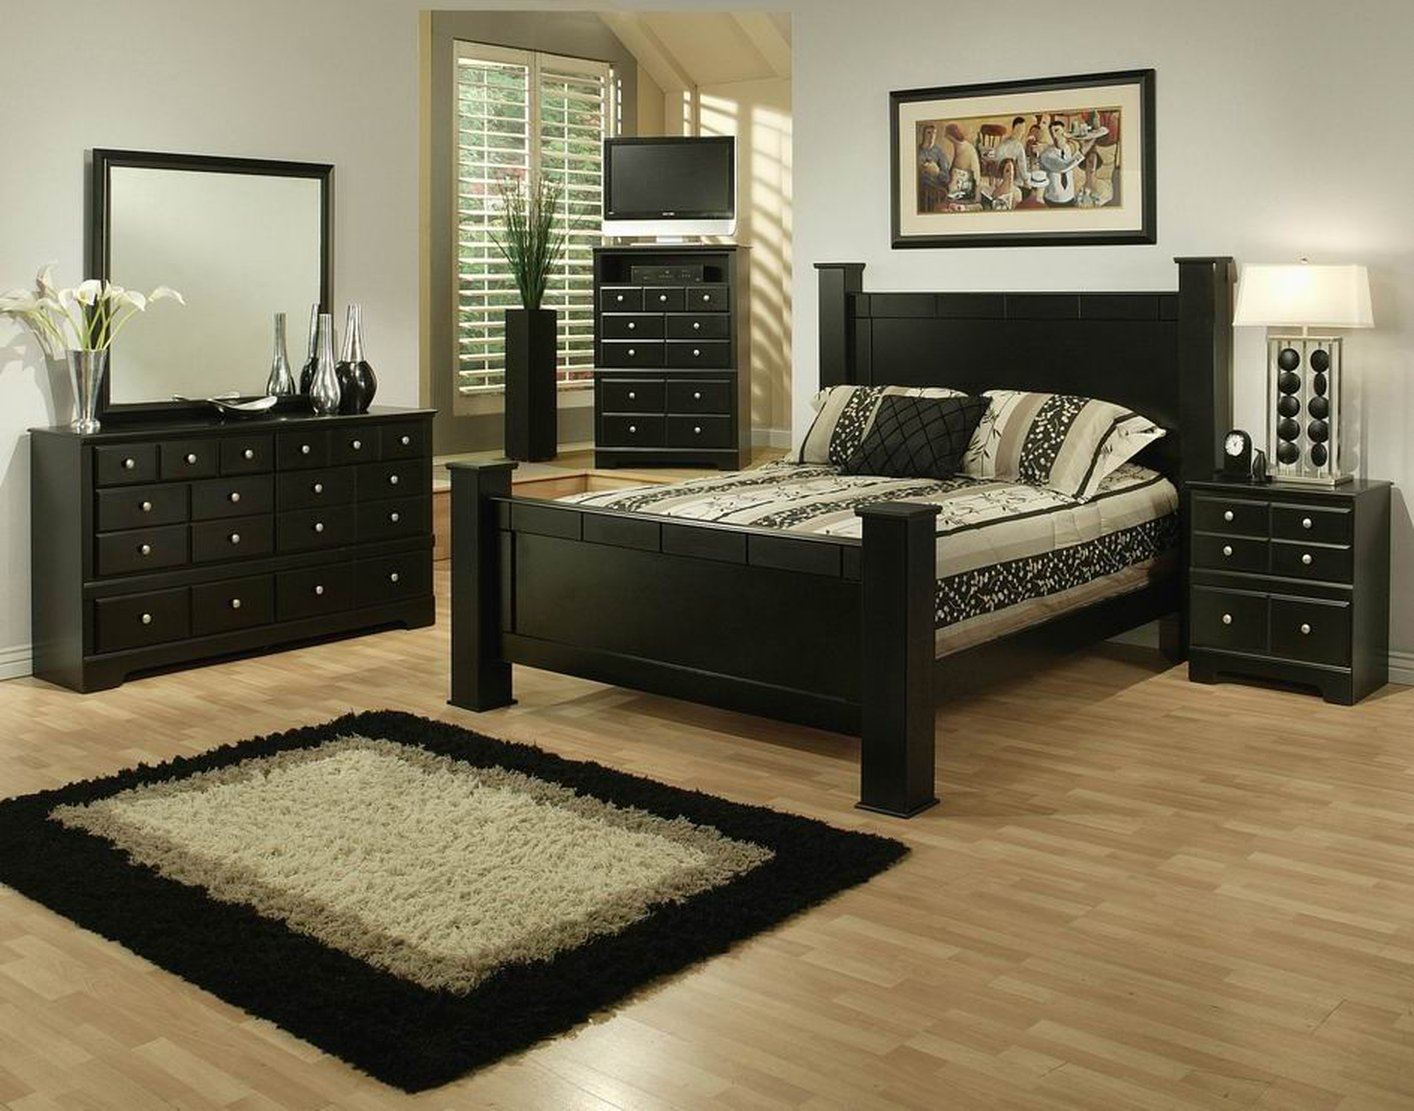 elena black wood queen size bed - Wooden Queen Size Bed Frame